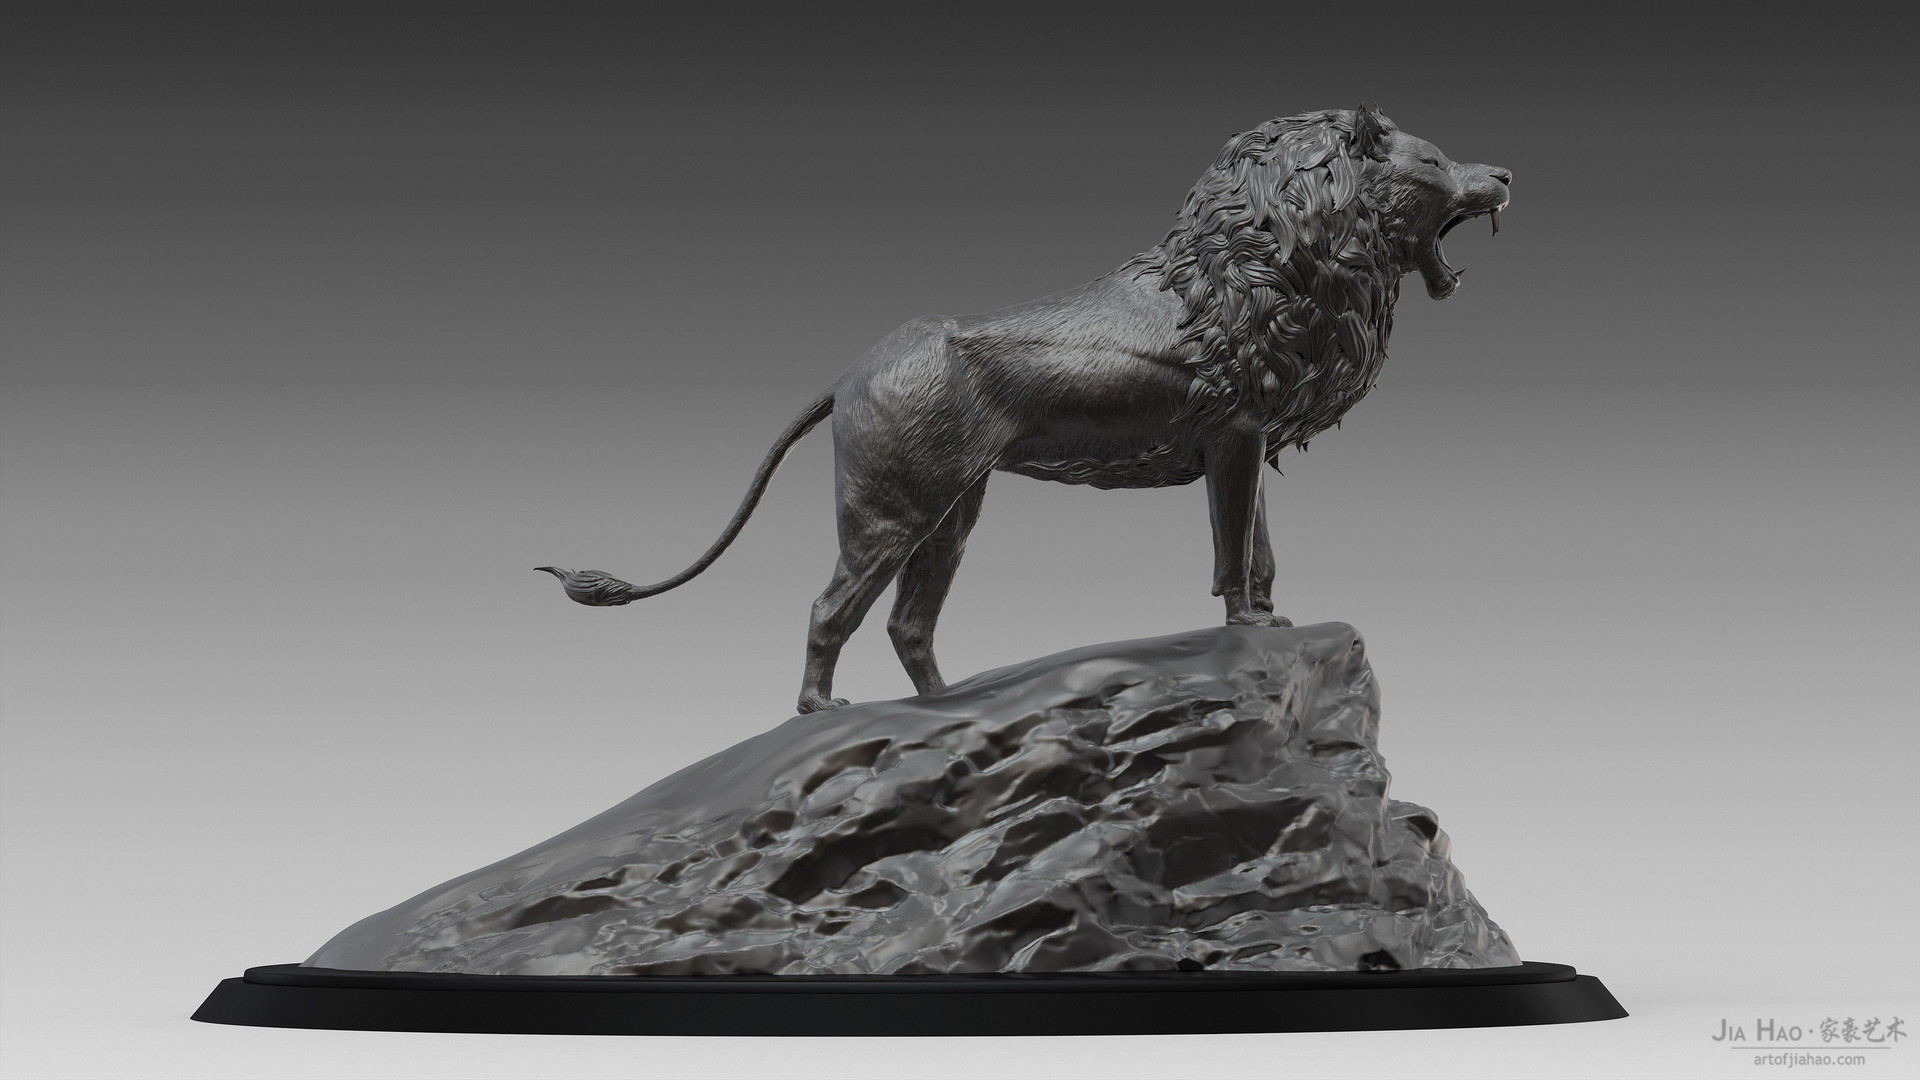 Jia hao lion digitalsculptureb 03